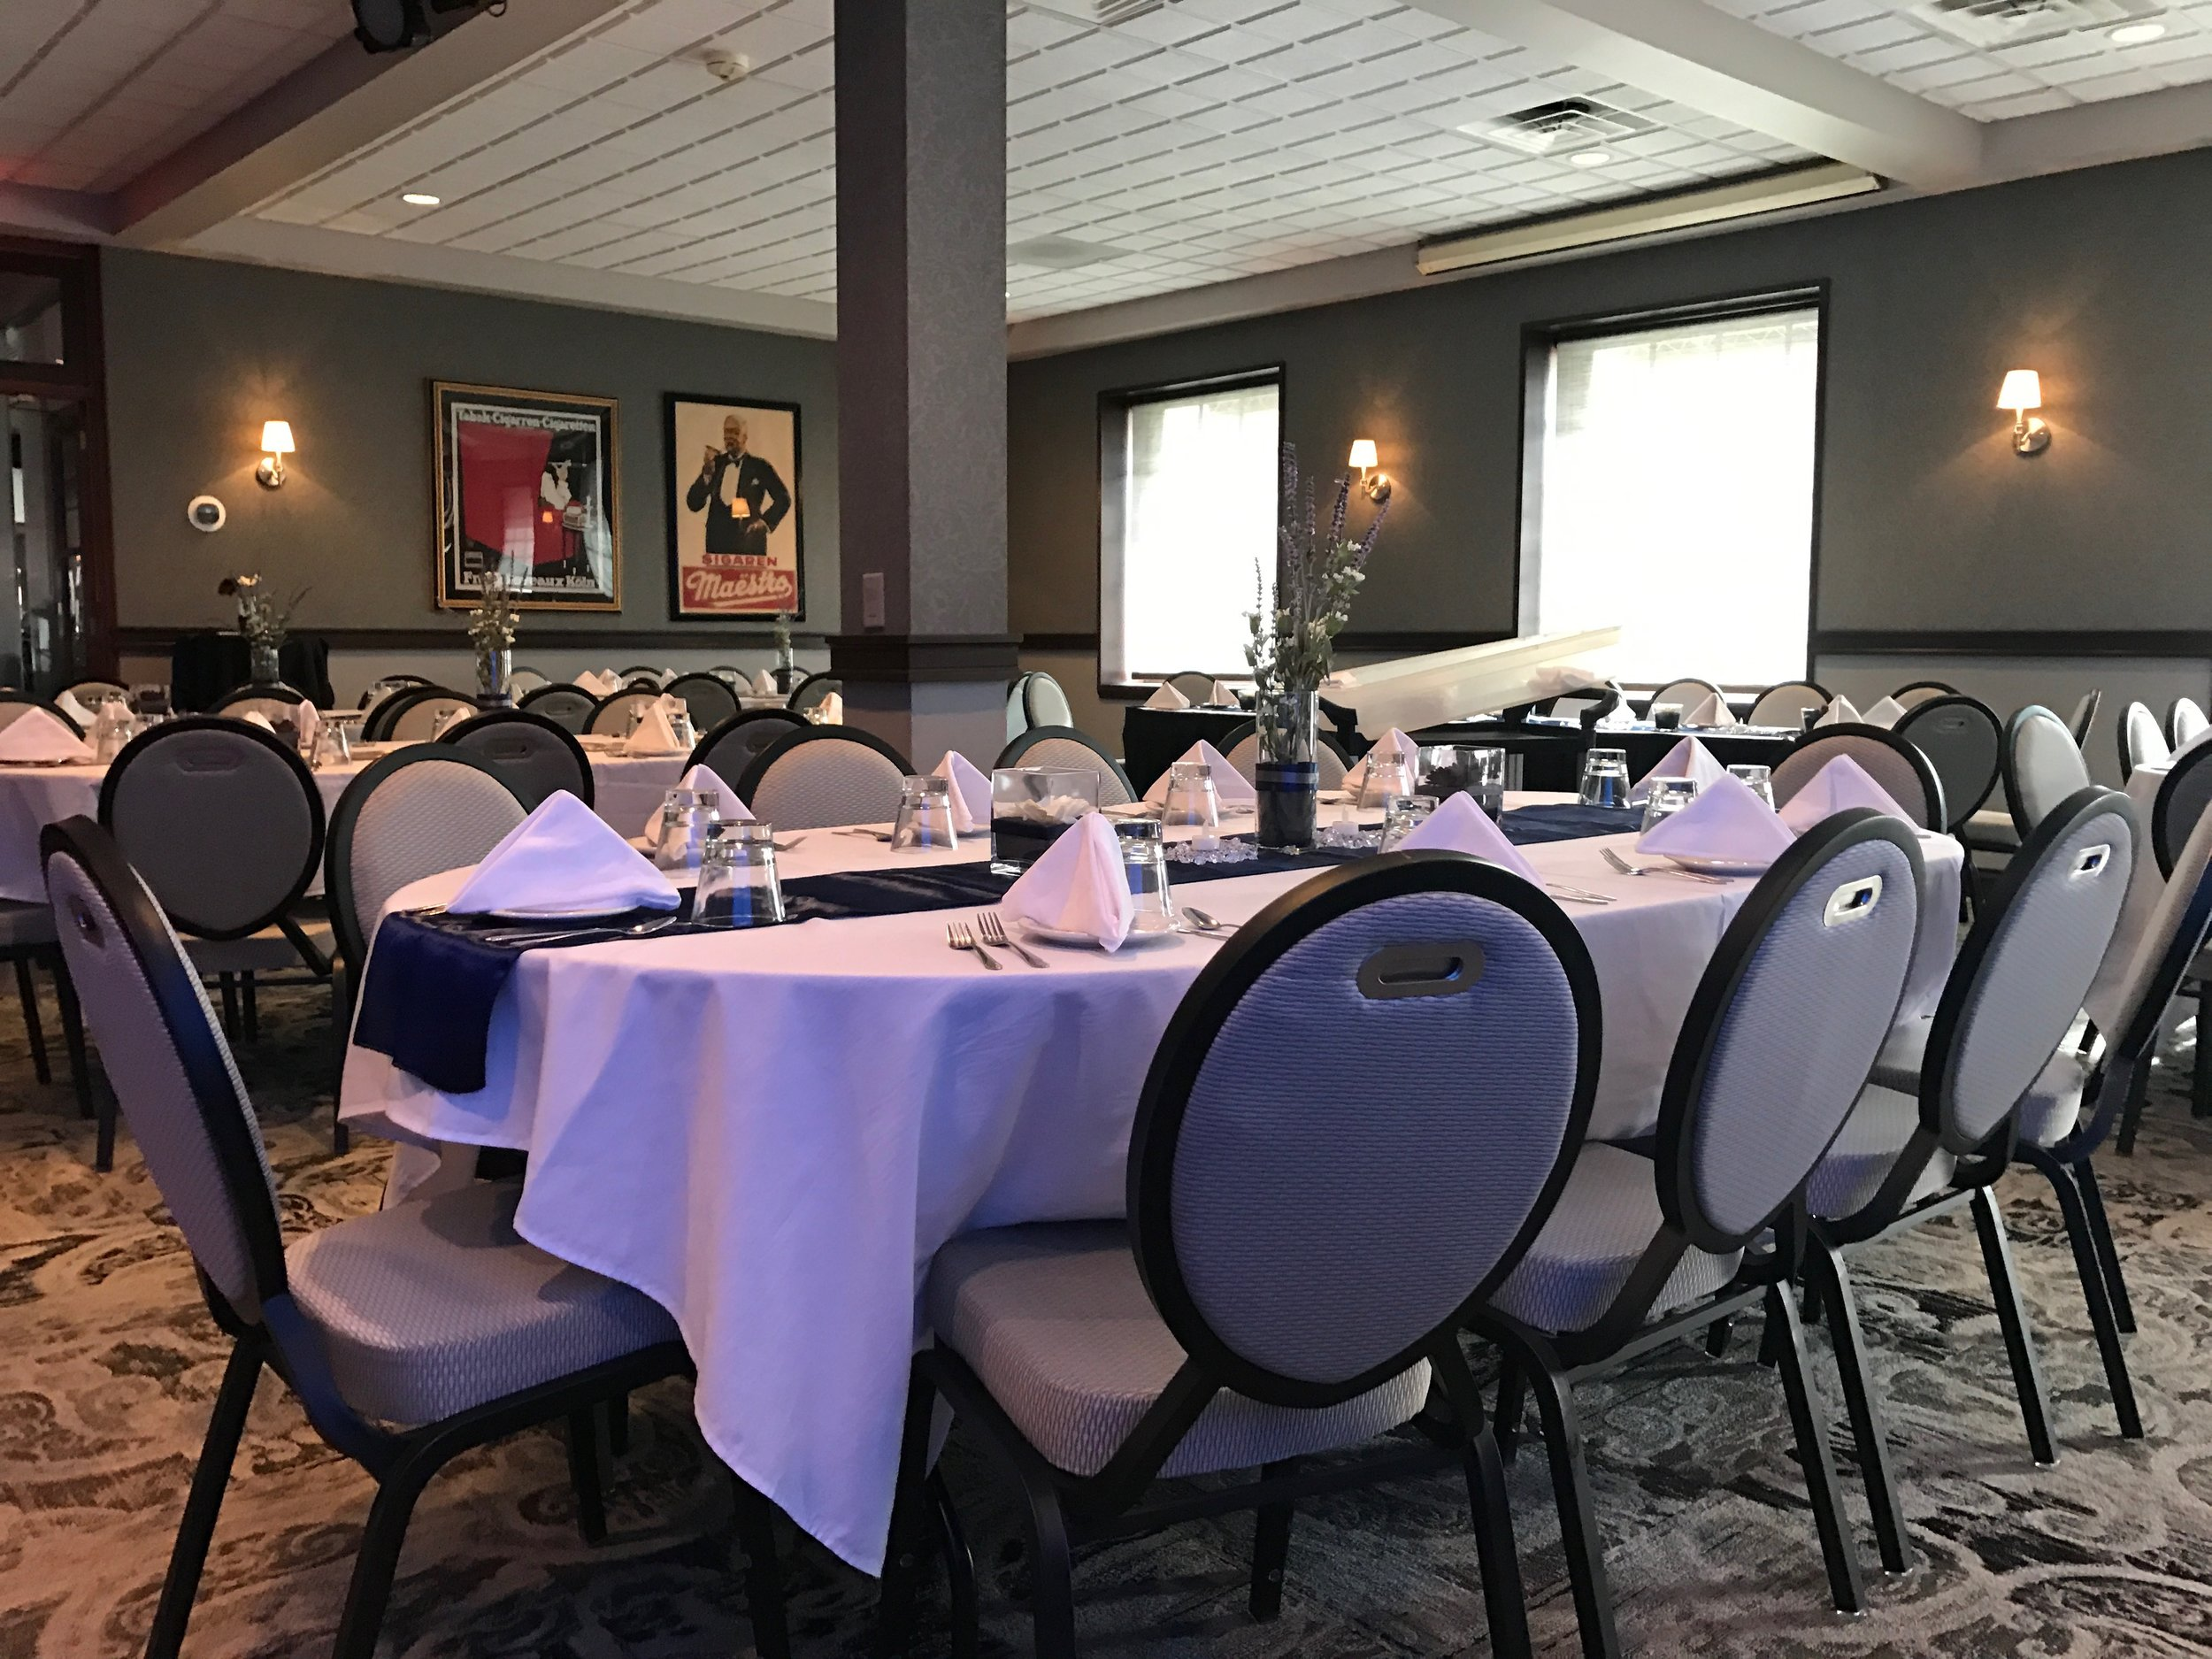 banquet-room-set-up-for-a-60-person-wedding_34246854366_o.jpg